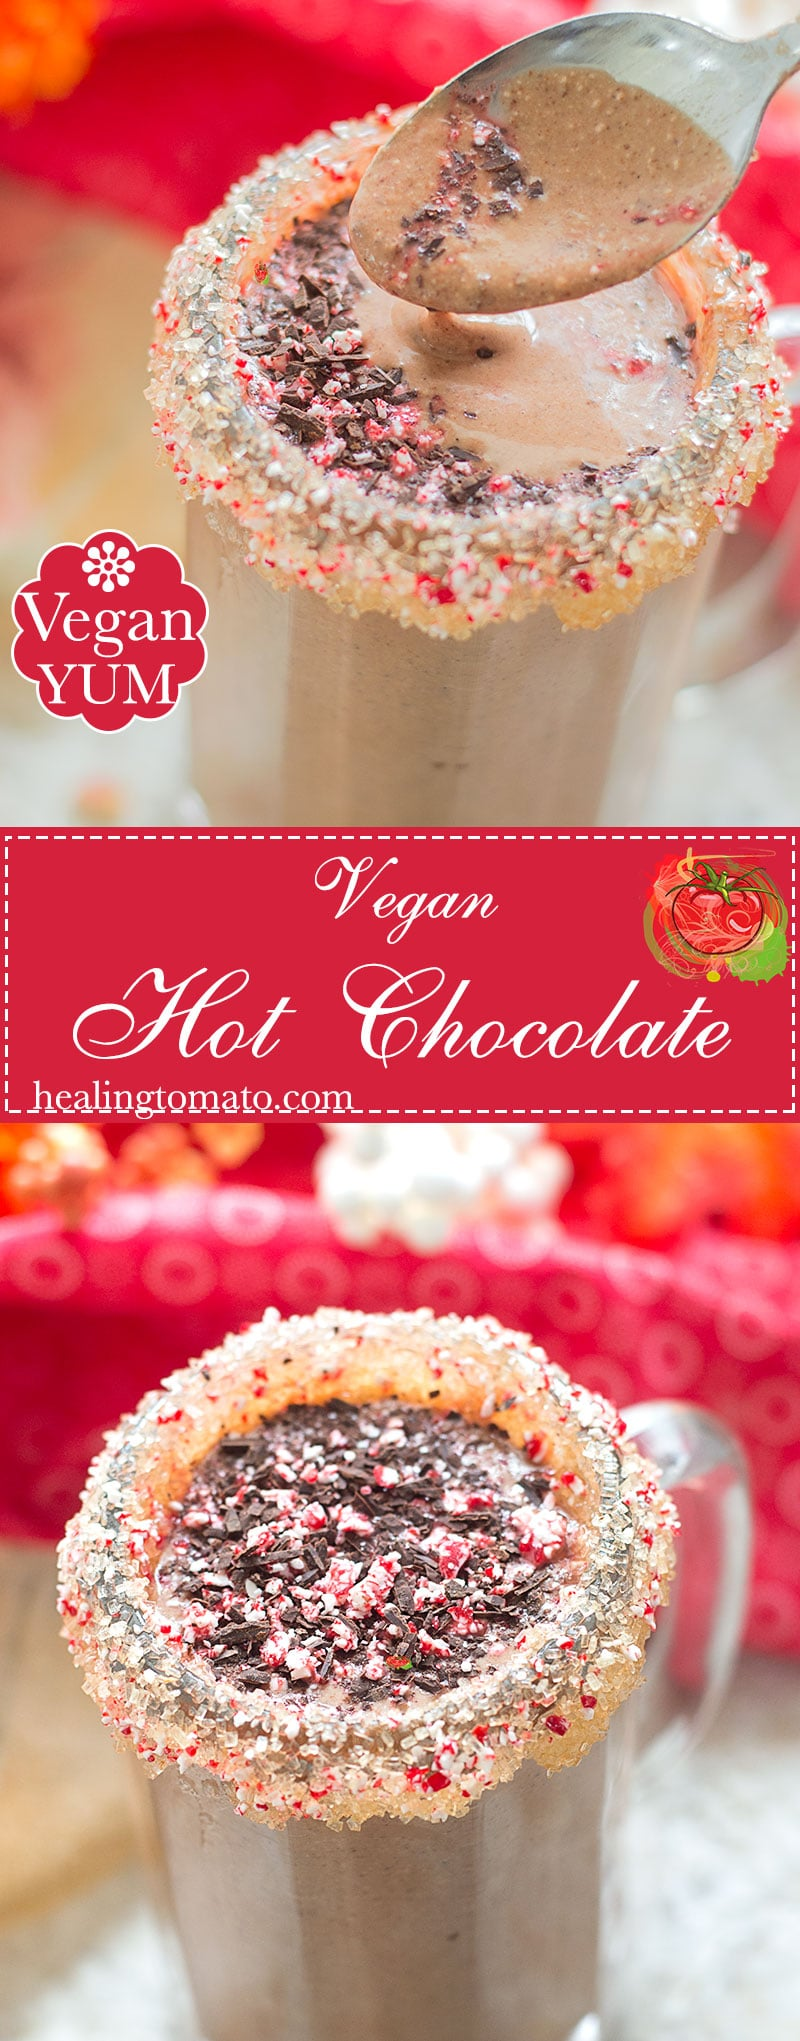 Quick and easy Vegan Hot Chocolate made with almond milk. Its the perfect Christmas morning drink or when the weather is cold outside. Made in 20 minutes.